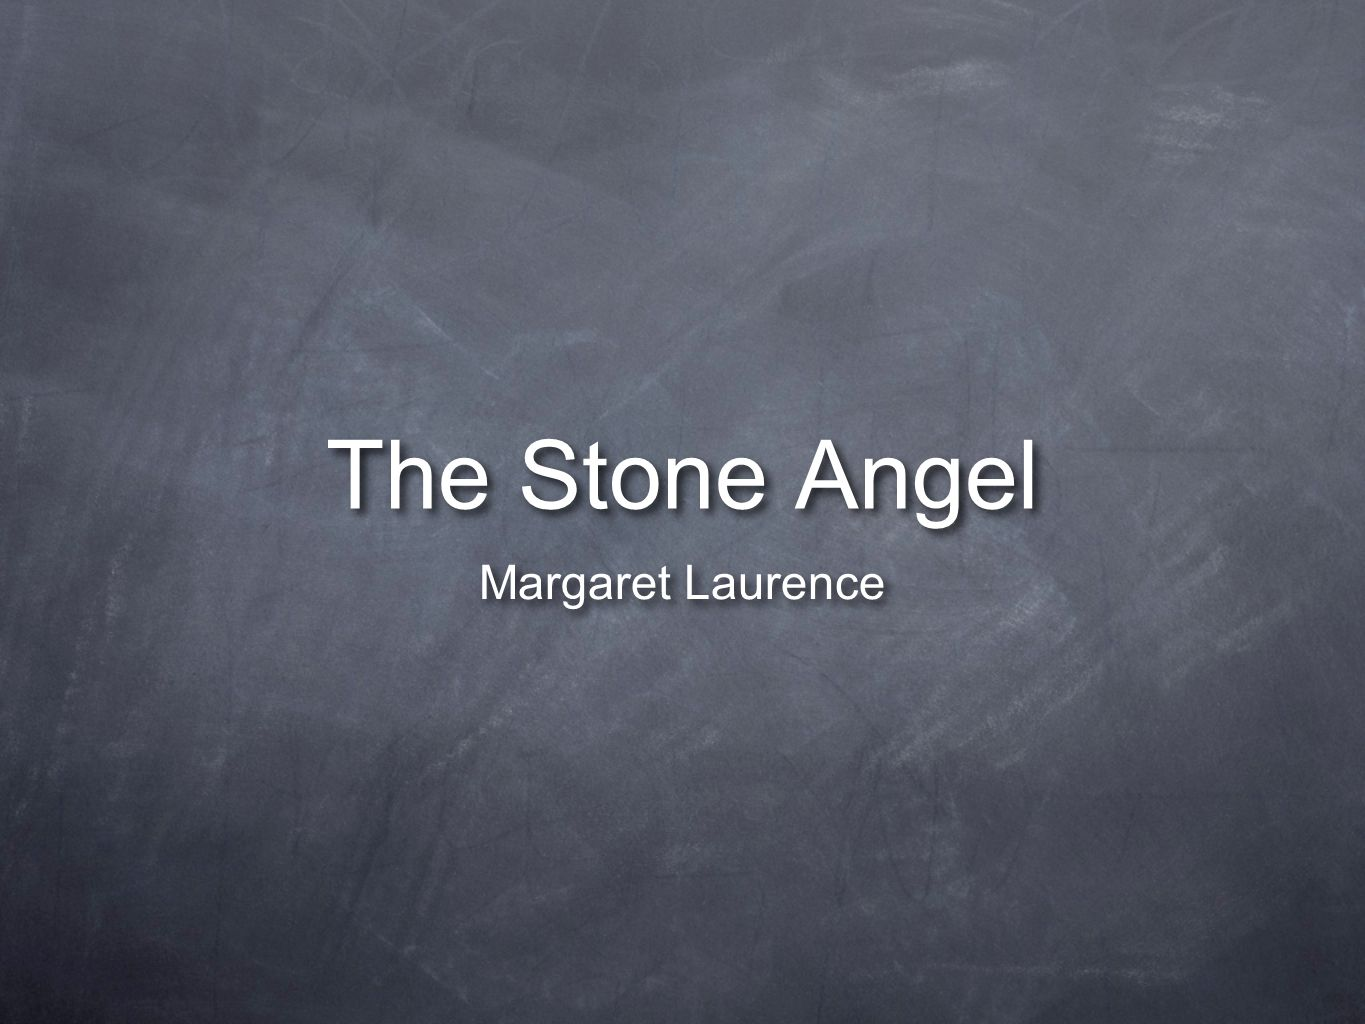 an analysis of the stone angel a novel by margaret laurence Margaret laurence was born jean margaret wemyss in neepawa, manitoba, the daughter of solicitor robert wemyss and verna jean simpson the stone angel, a feature-length film based on laurence's novel, written and directed by kari skogland and starring ellen burstyn premiered in fall.